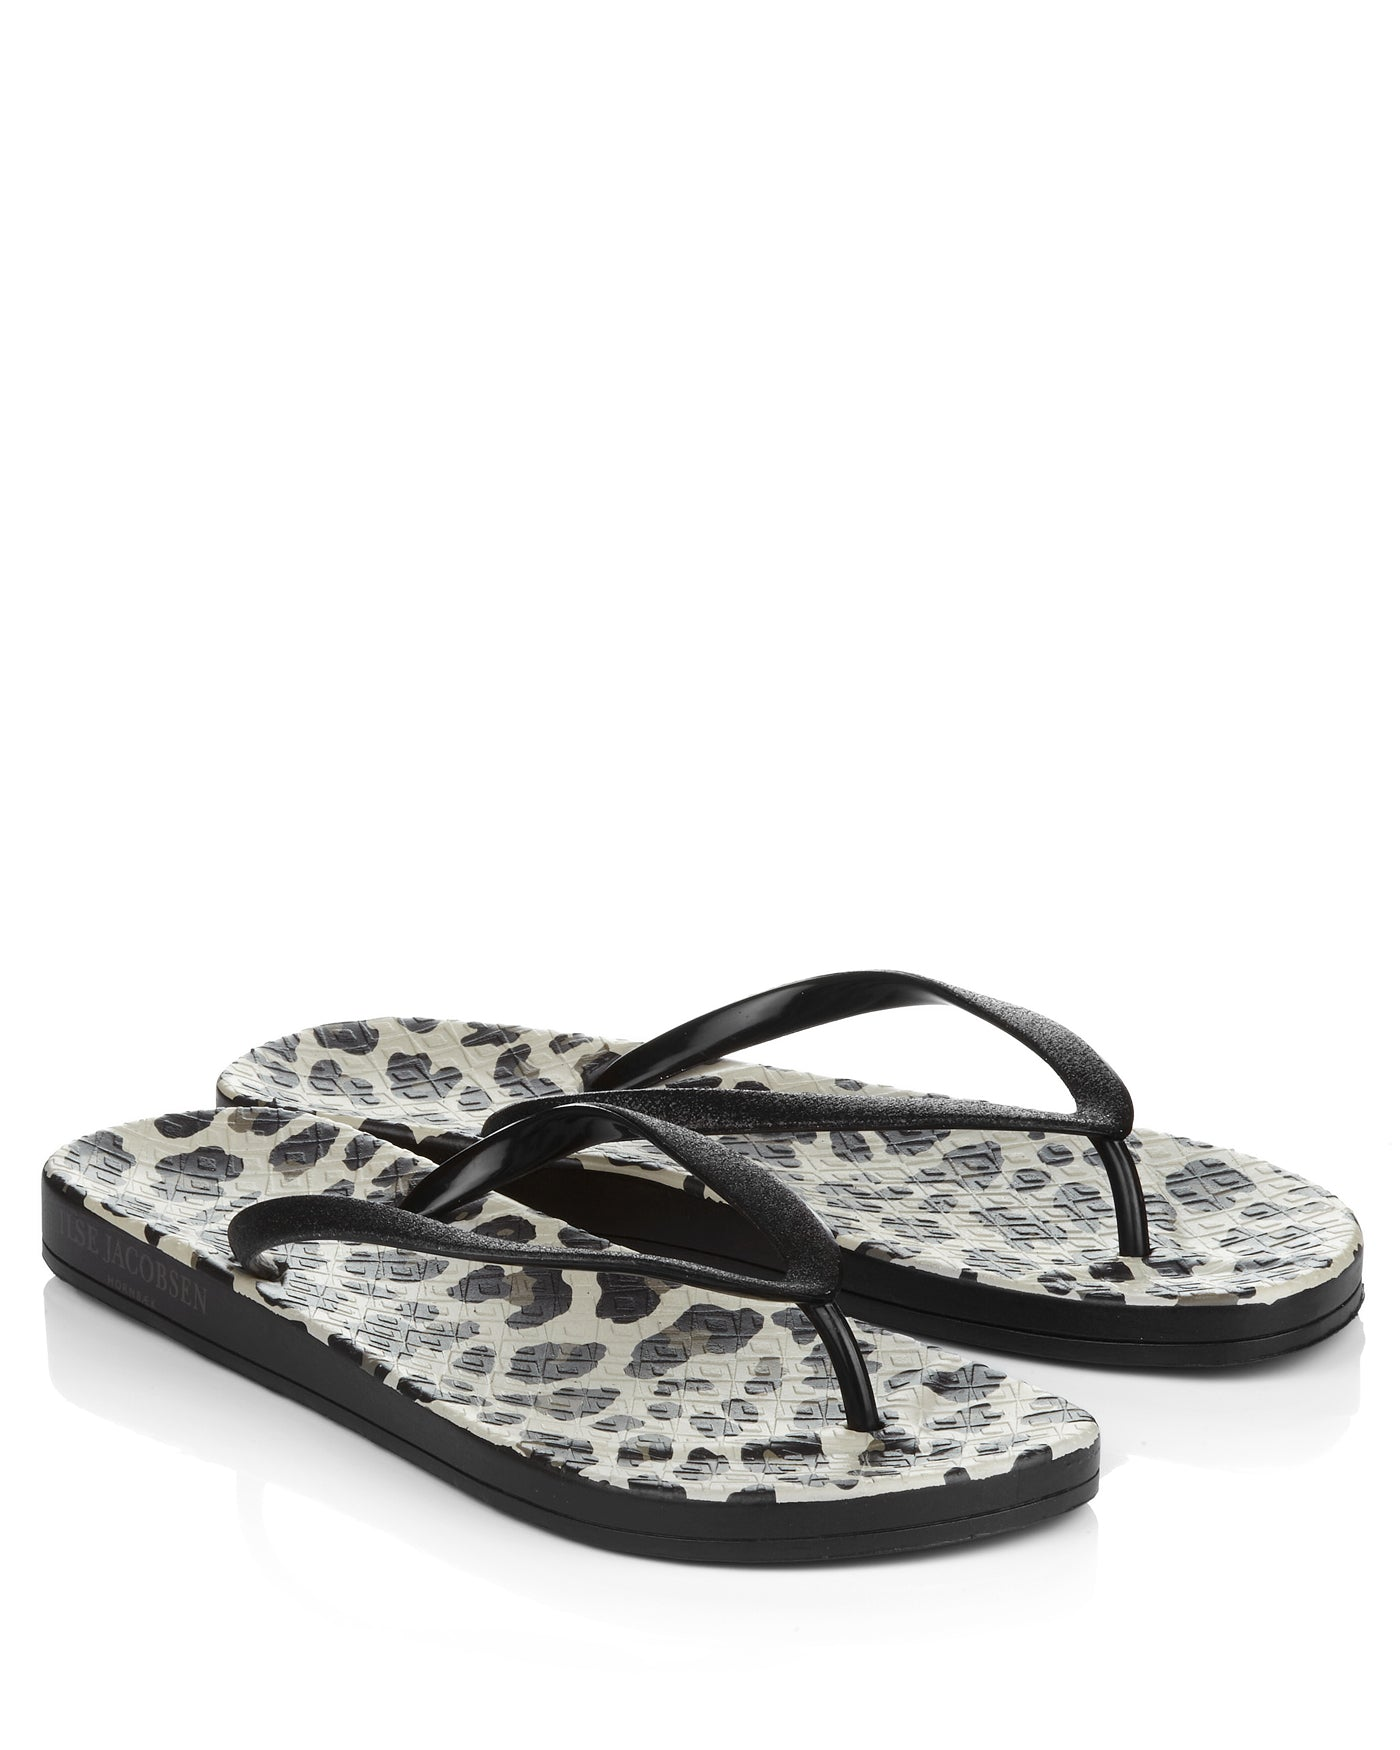 Cheer 03 Black Flipflops - The Espadrille Hut